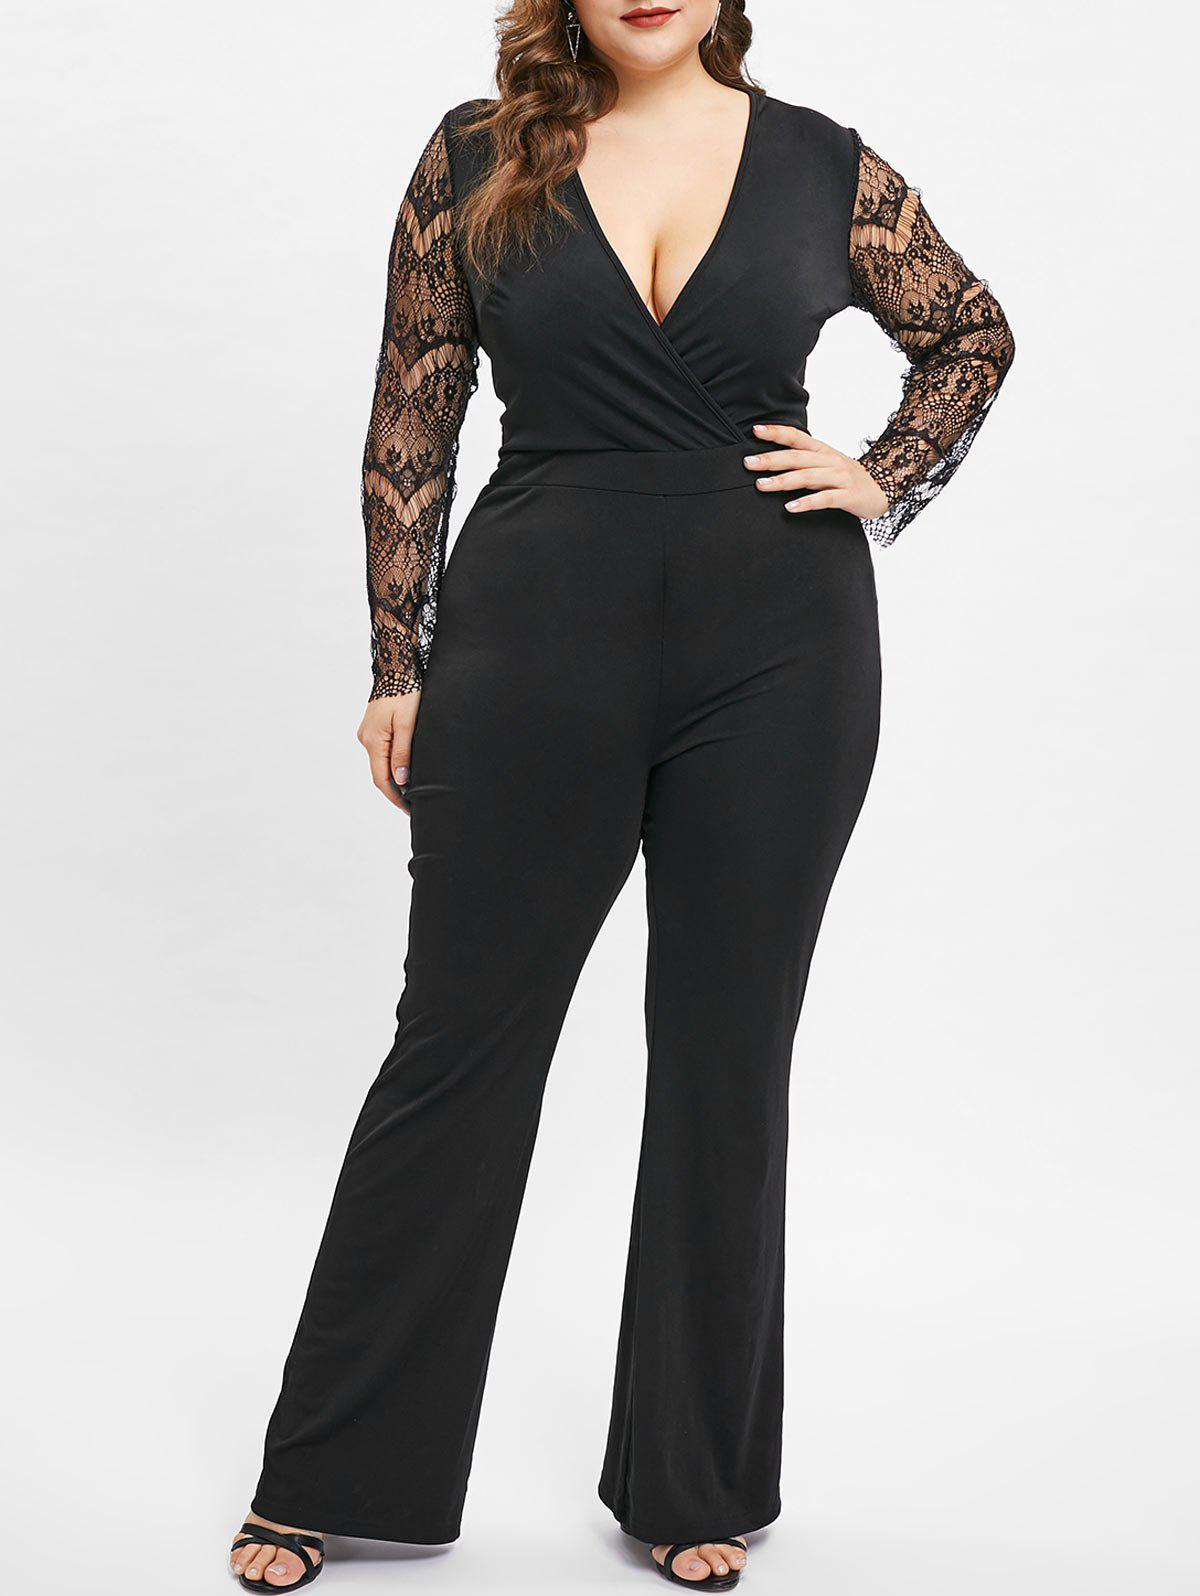 f3e726bf2b0 51% OFF   2019 Plus Size Lace Long Sleeves V Neck Jumpsuit